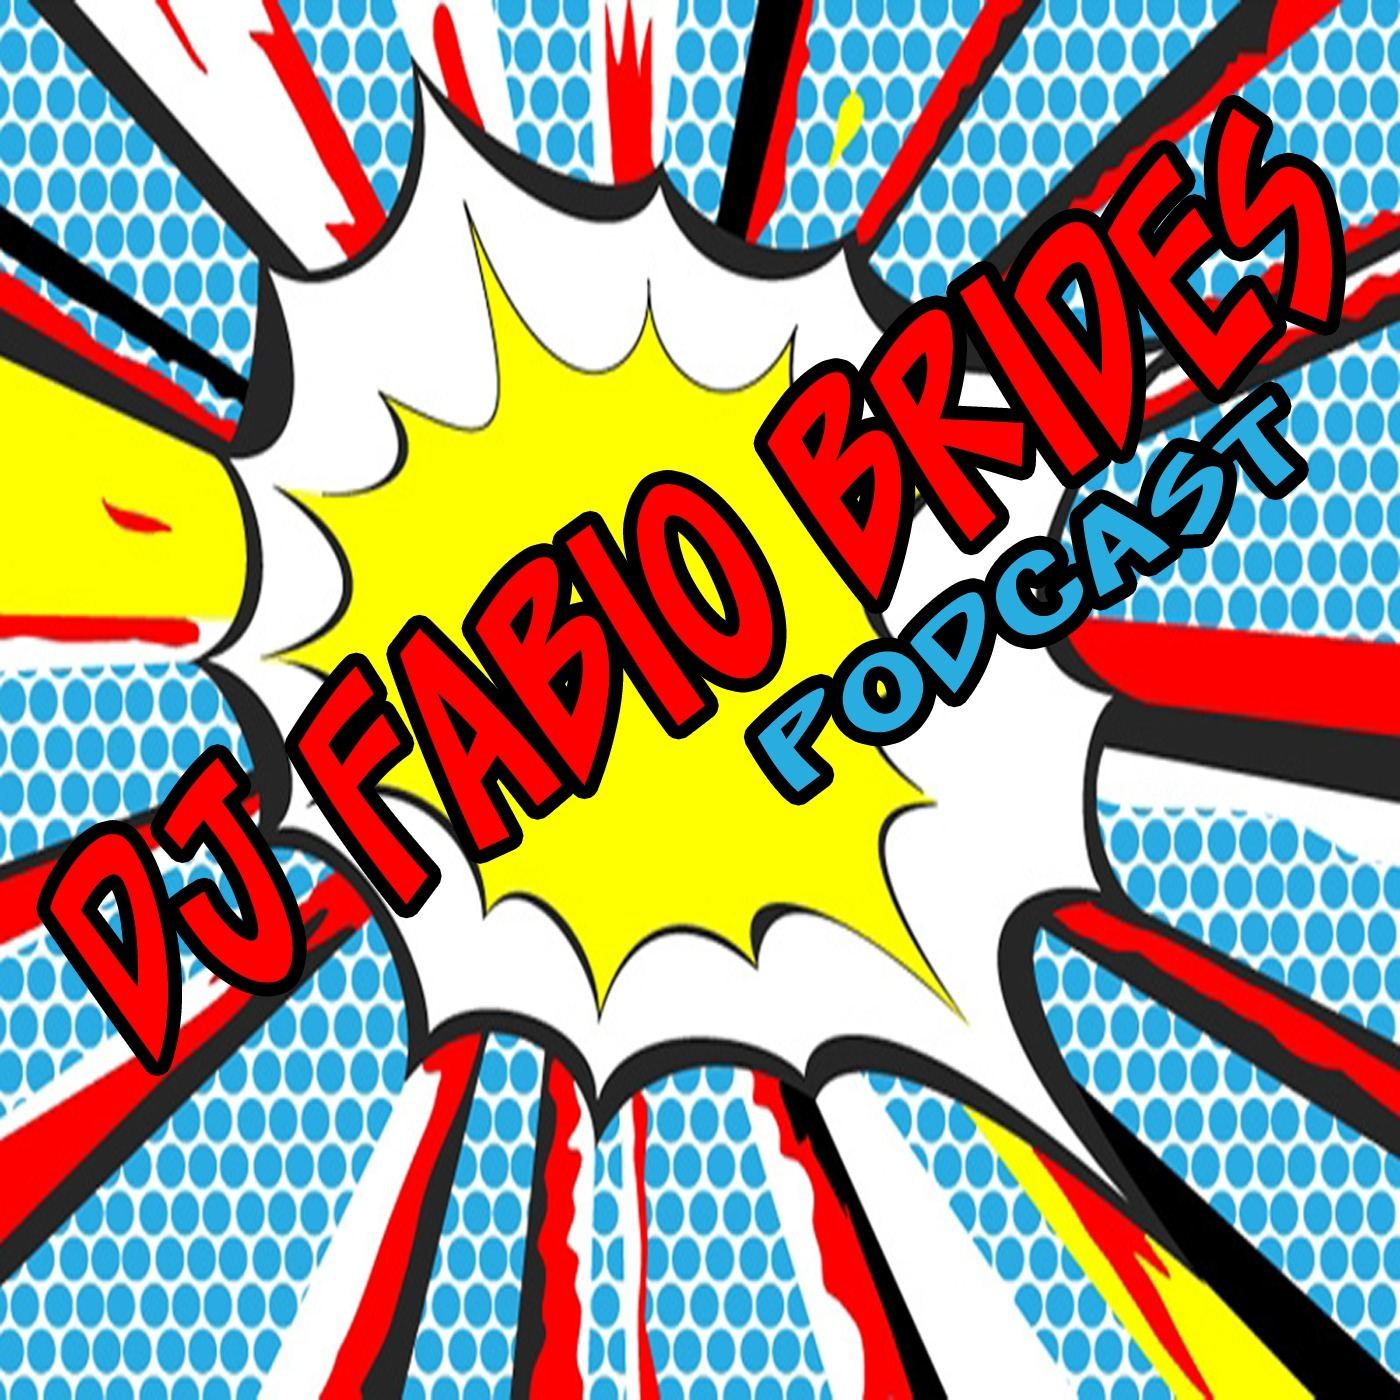 DJ Fabio Brides' Podcast